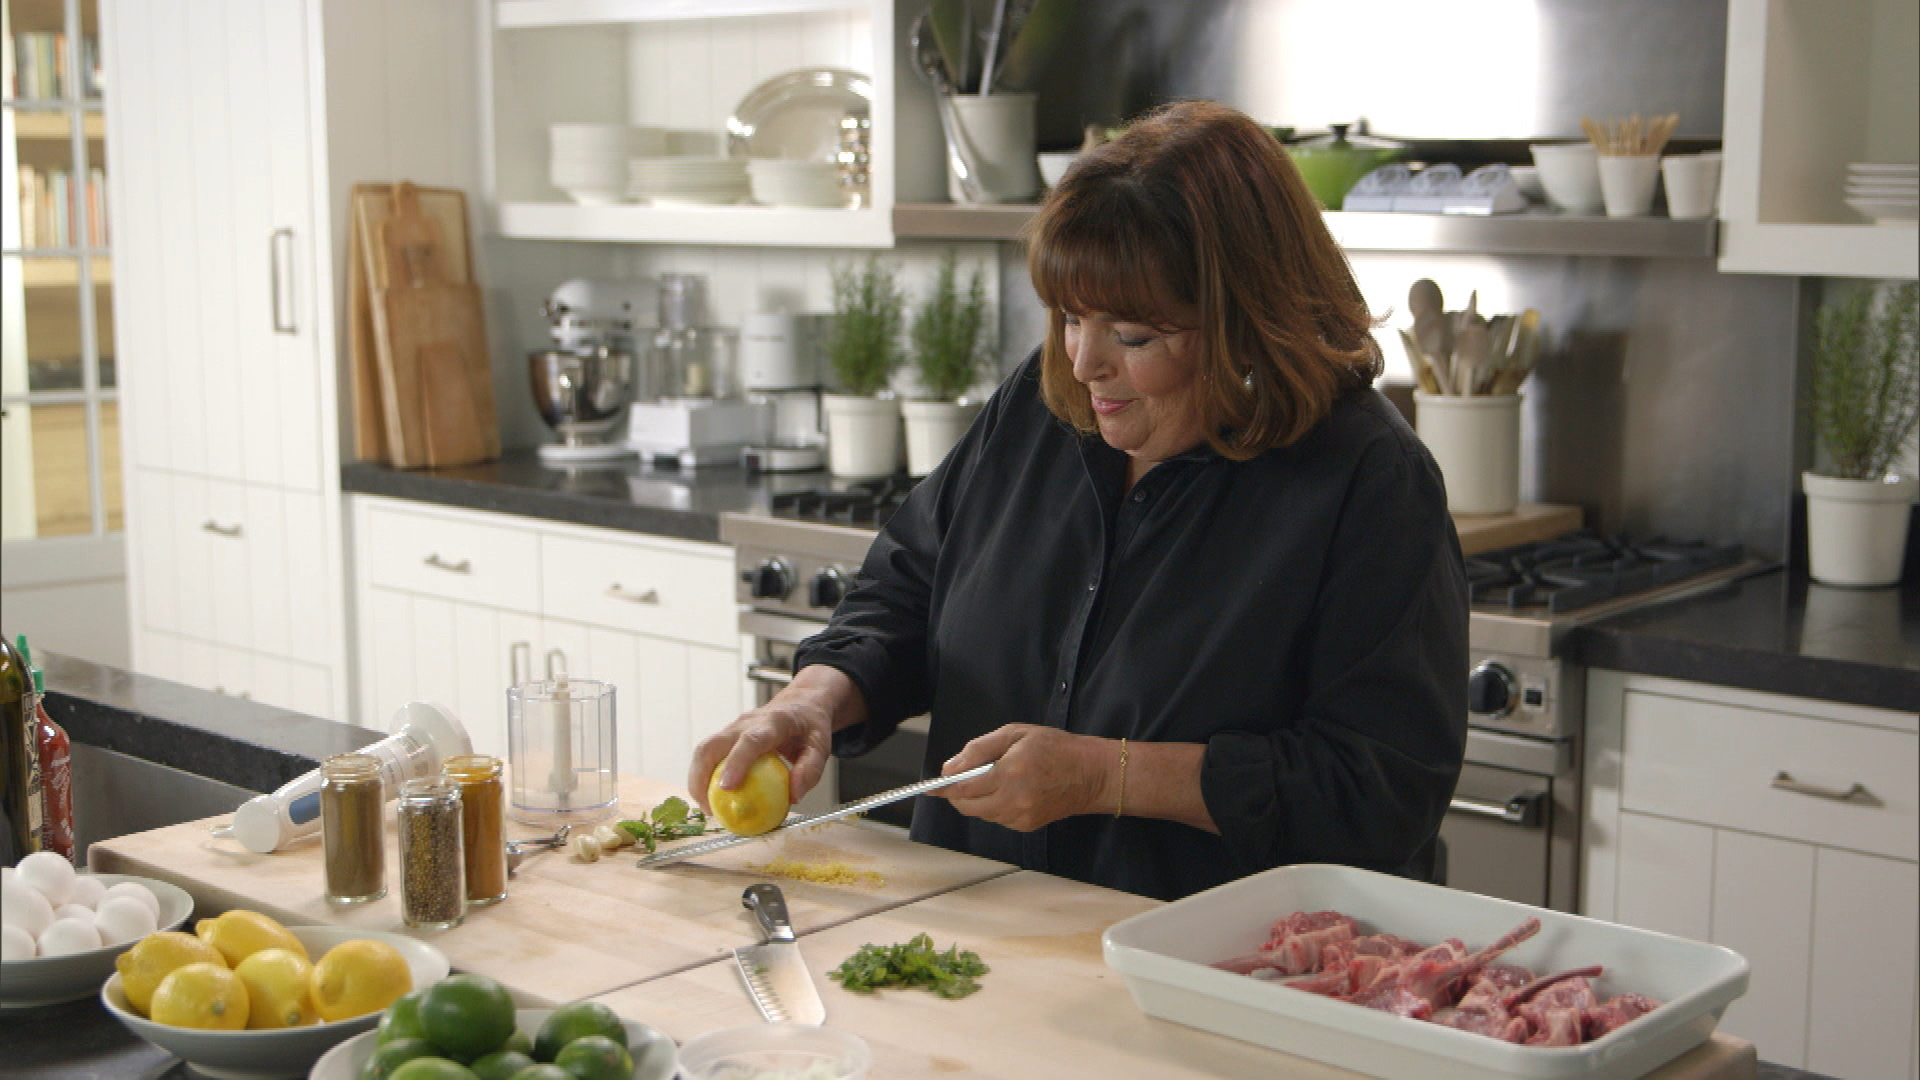 Barefoot contessa back to basics video moroccan grilled lamb chops season 12 episode 5 - Barefoot contessa cooking show ...